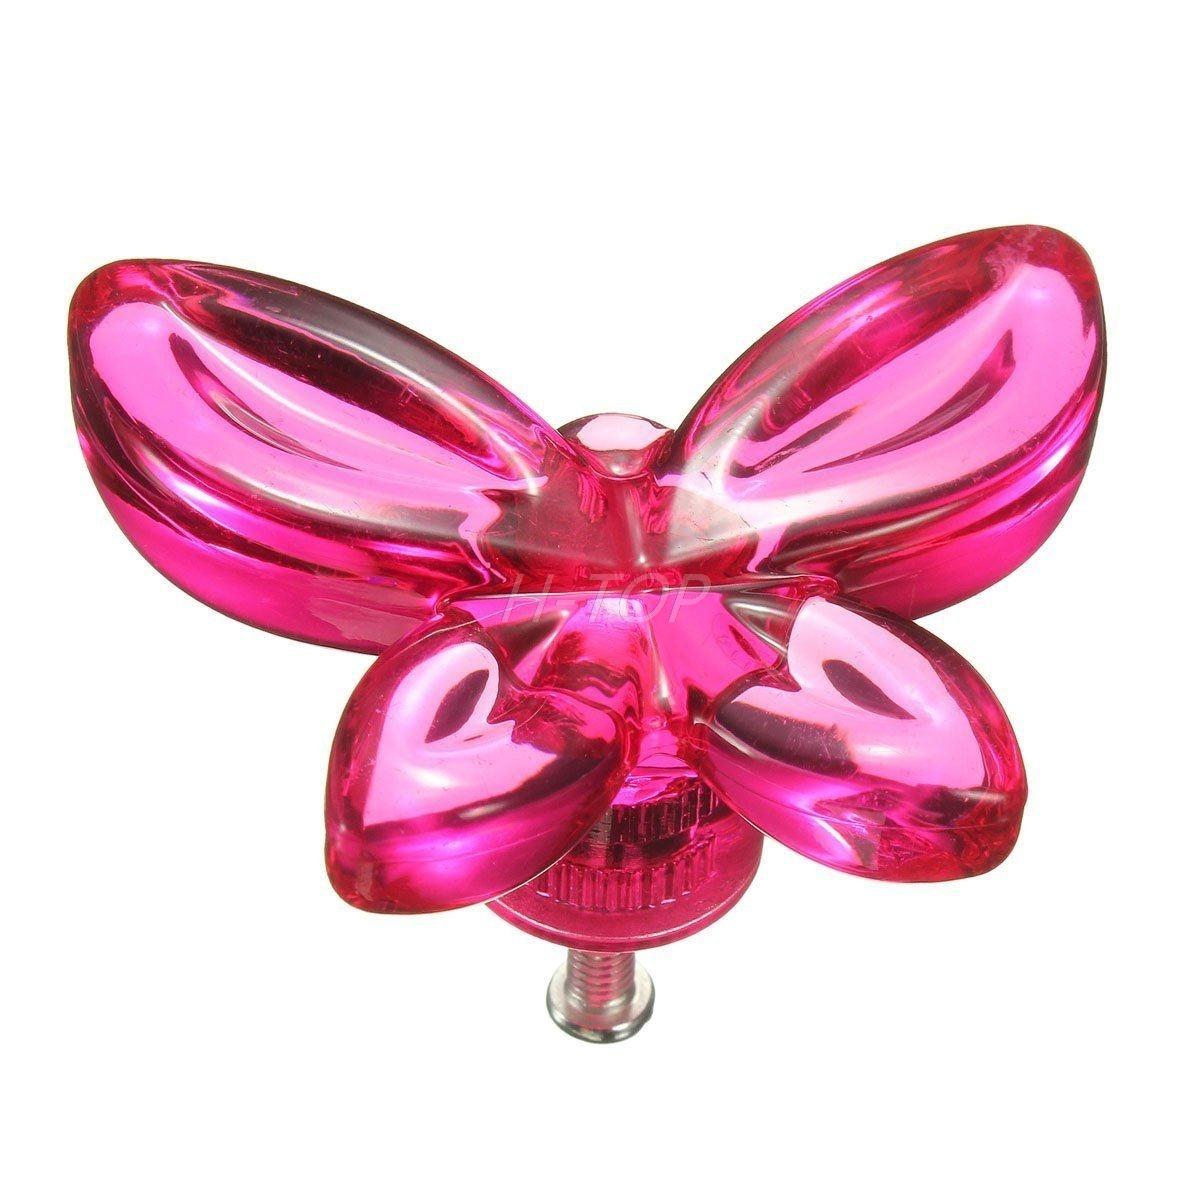 New Butterfly Design Drawer Pull Door Cabinet Knob Handle E7027(China (Mainland))